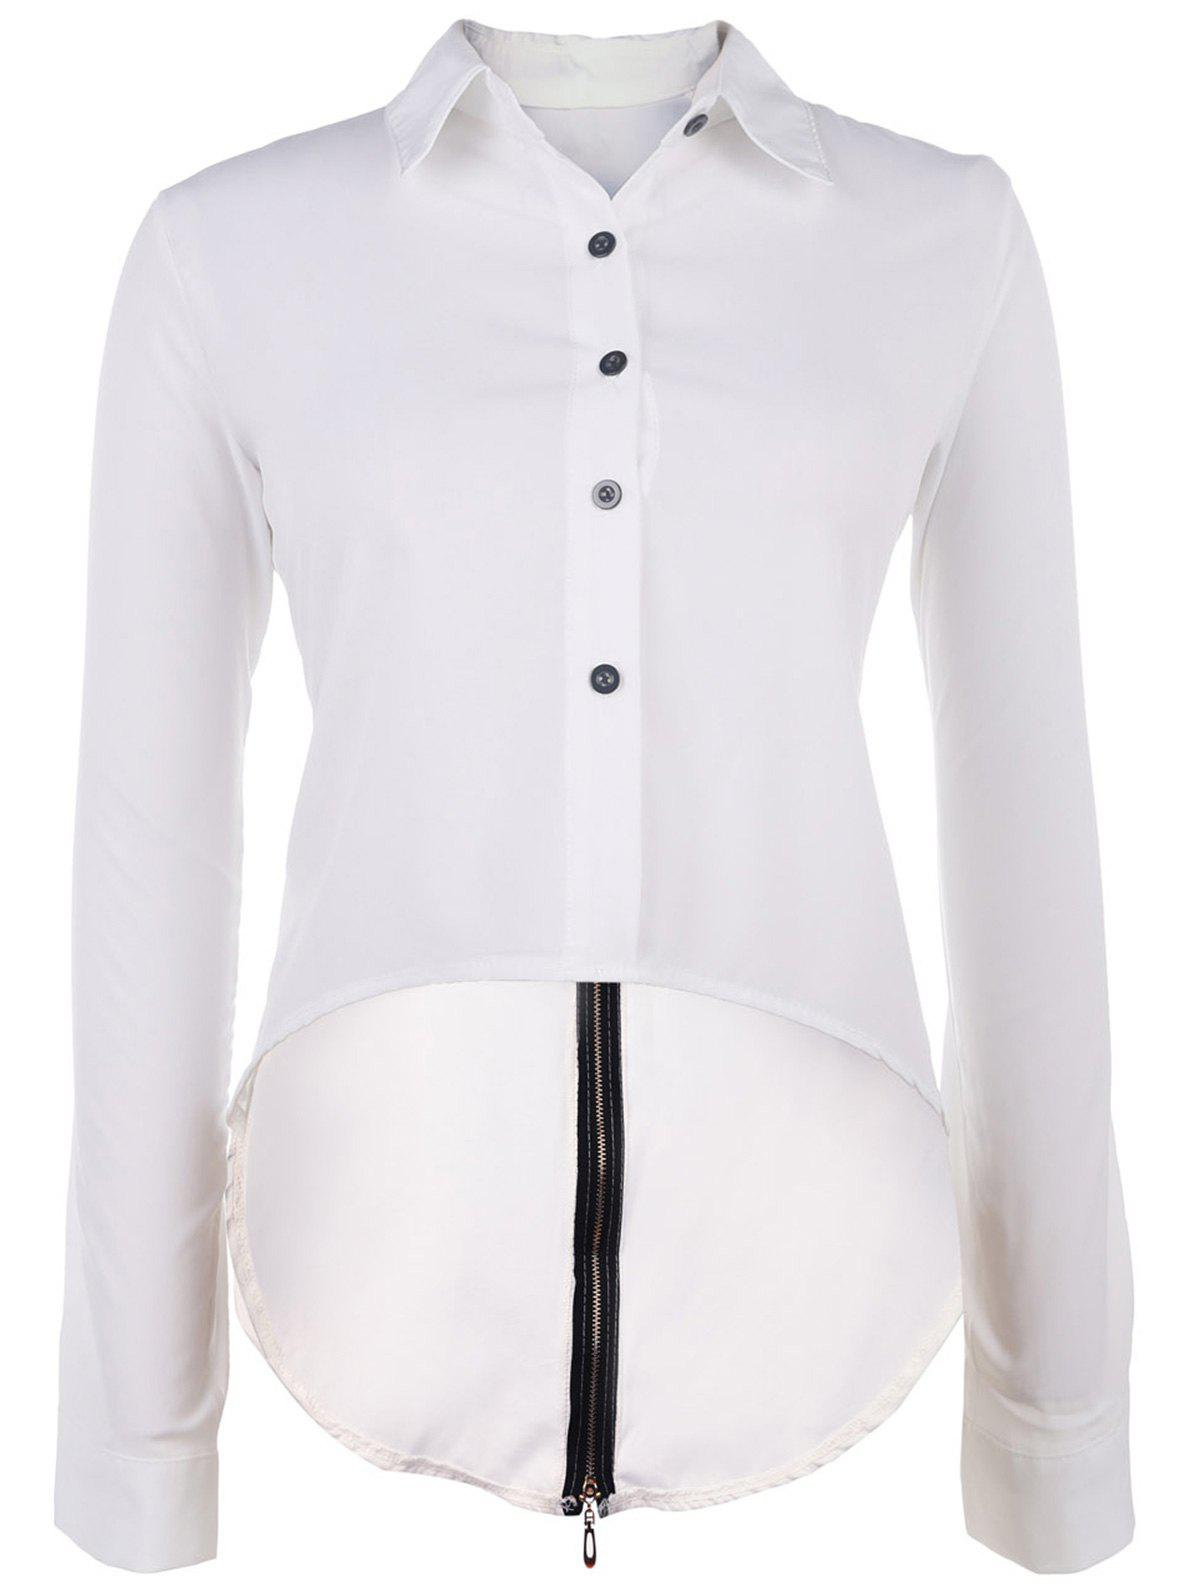 Chic Women's Shirt Collar Long Sleeve Hign-Low Back Slit Blouse - WHITE XL